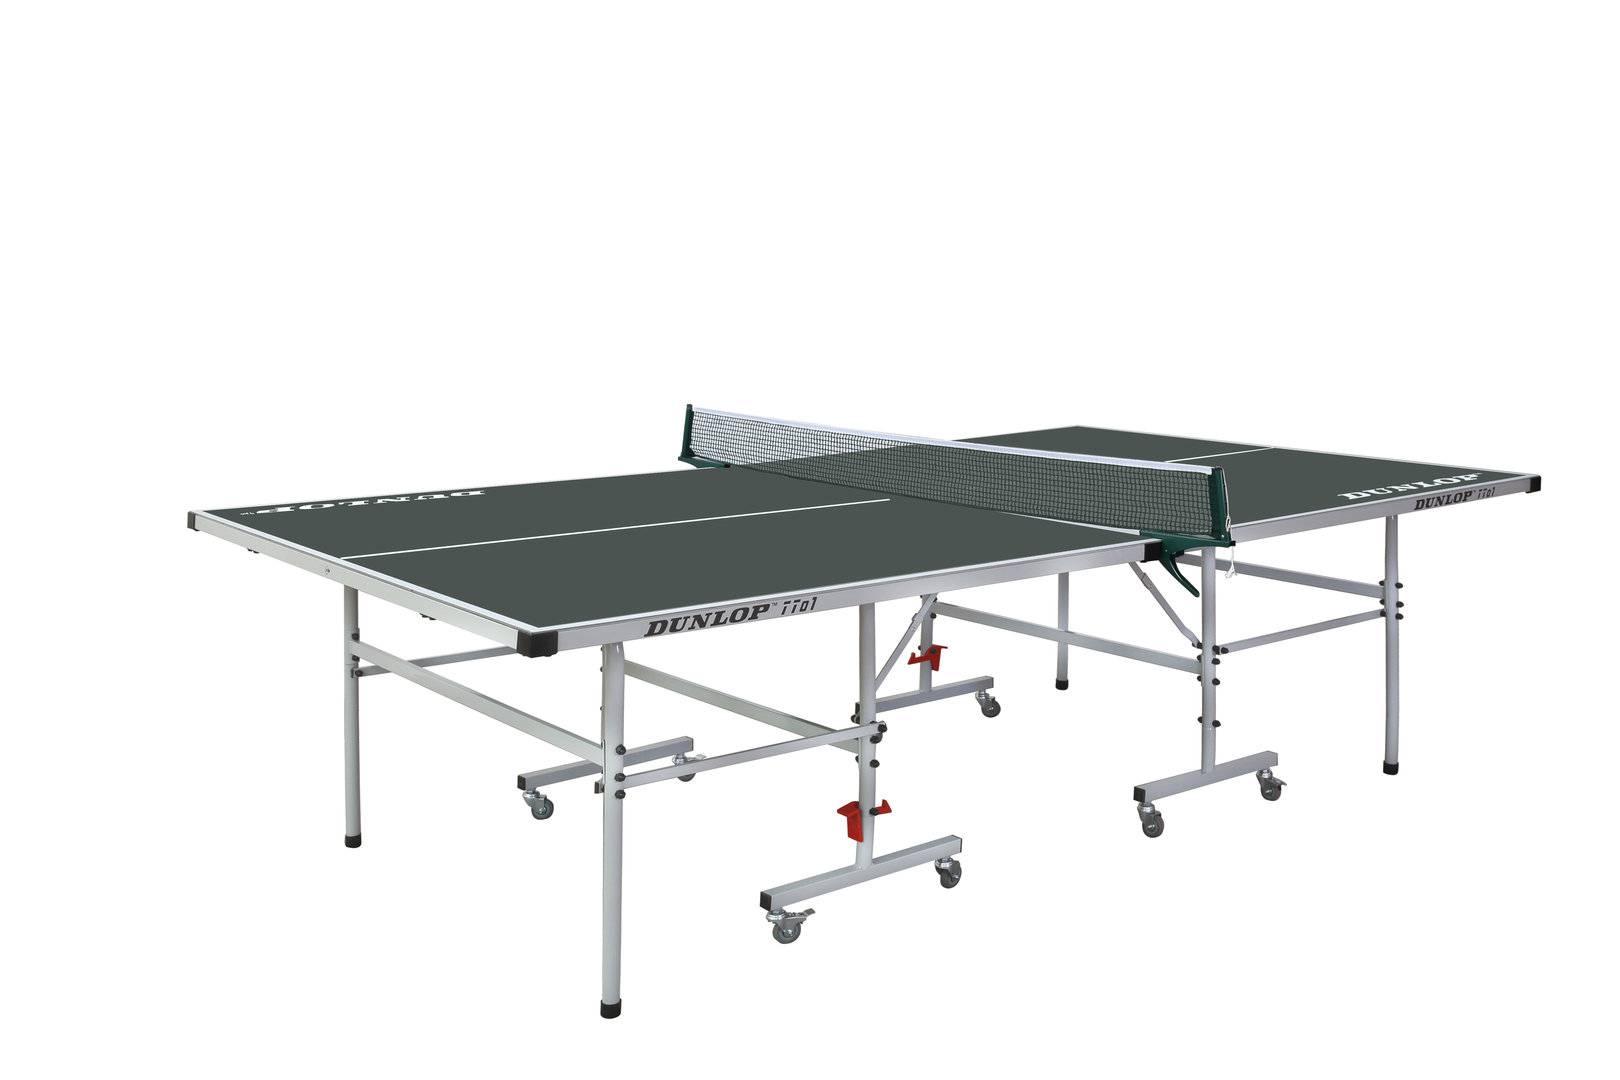 Dunlop tto1 full size outdoor table tennis table in green - Full size table tennis table dimensions ...